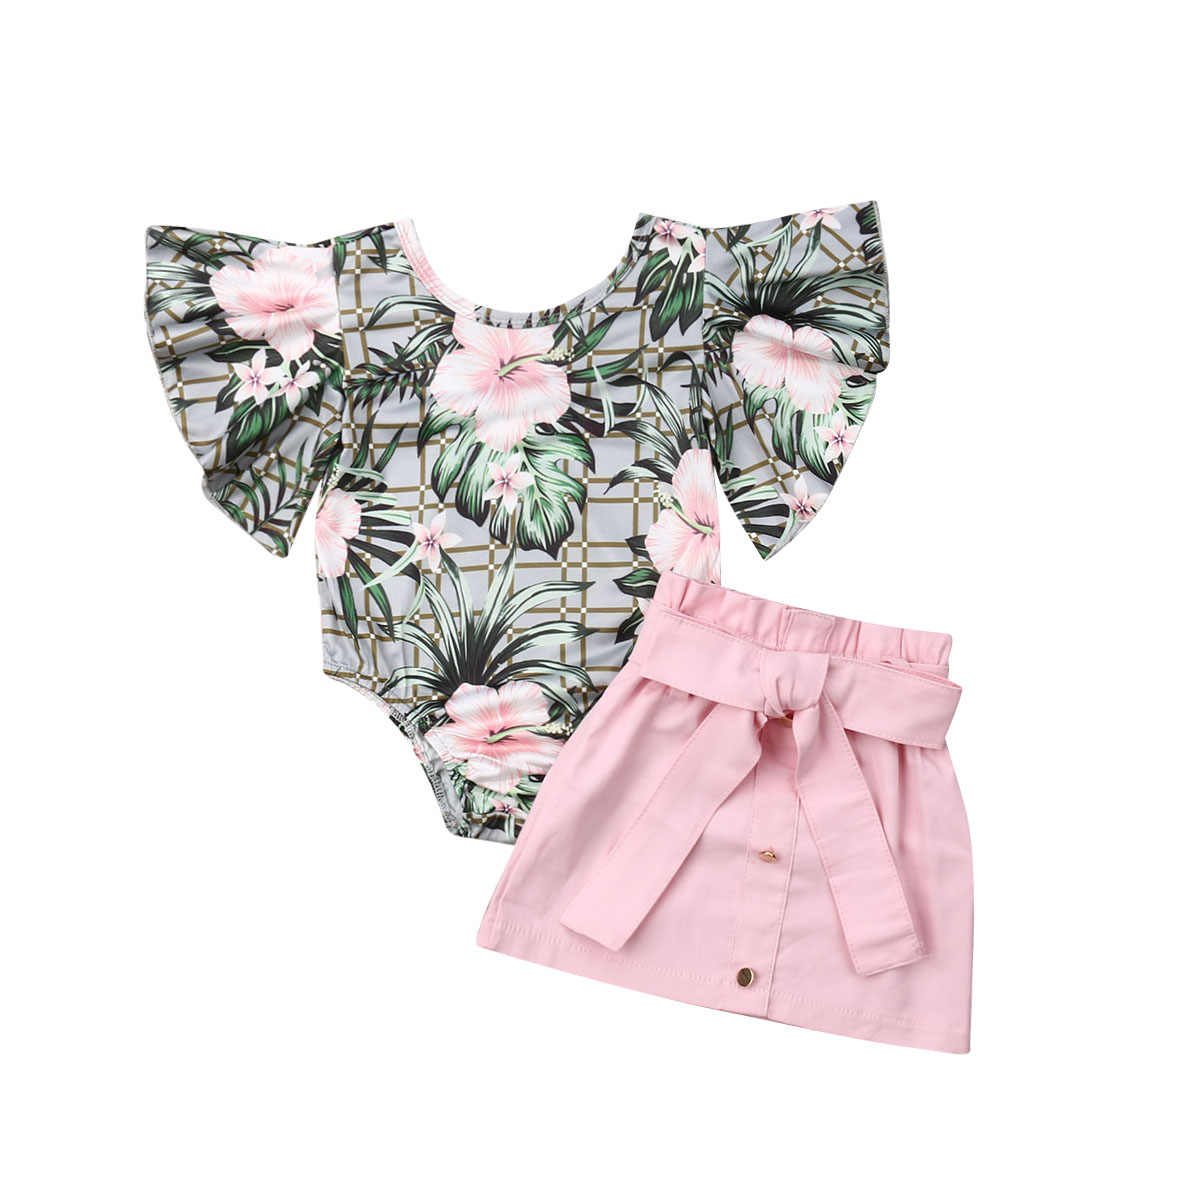 1-4Y Infant Baby Girls Clothes Sets Flowers Print Short Sleeve Romper Tops+Pink Mini Skirts Summer Clothes